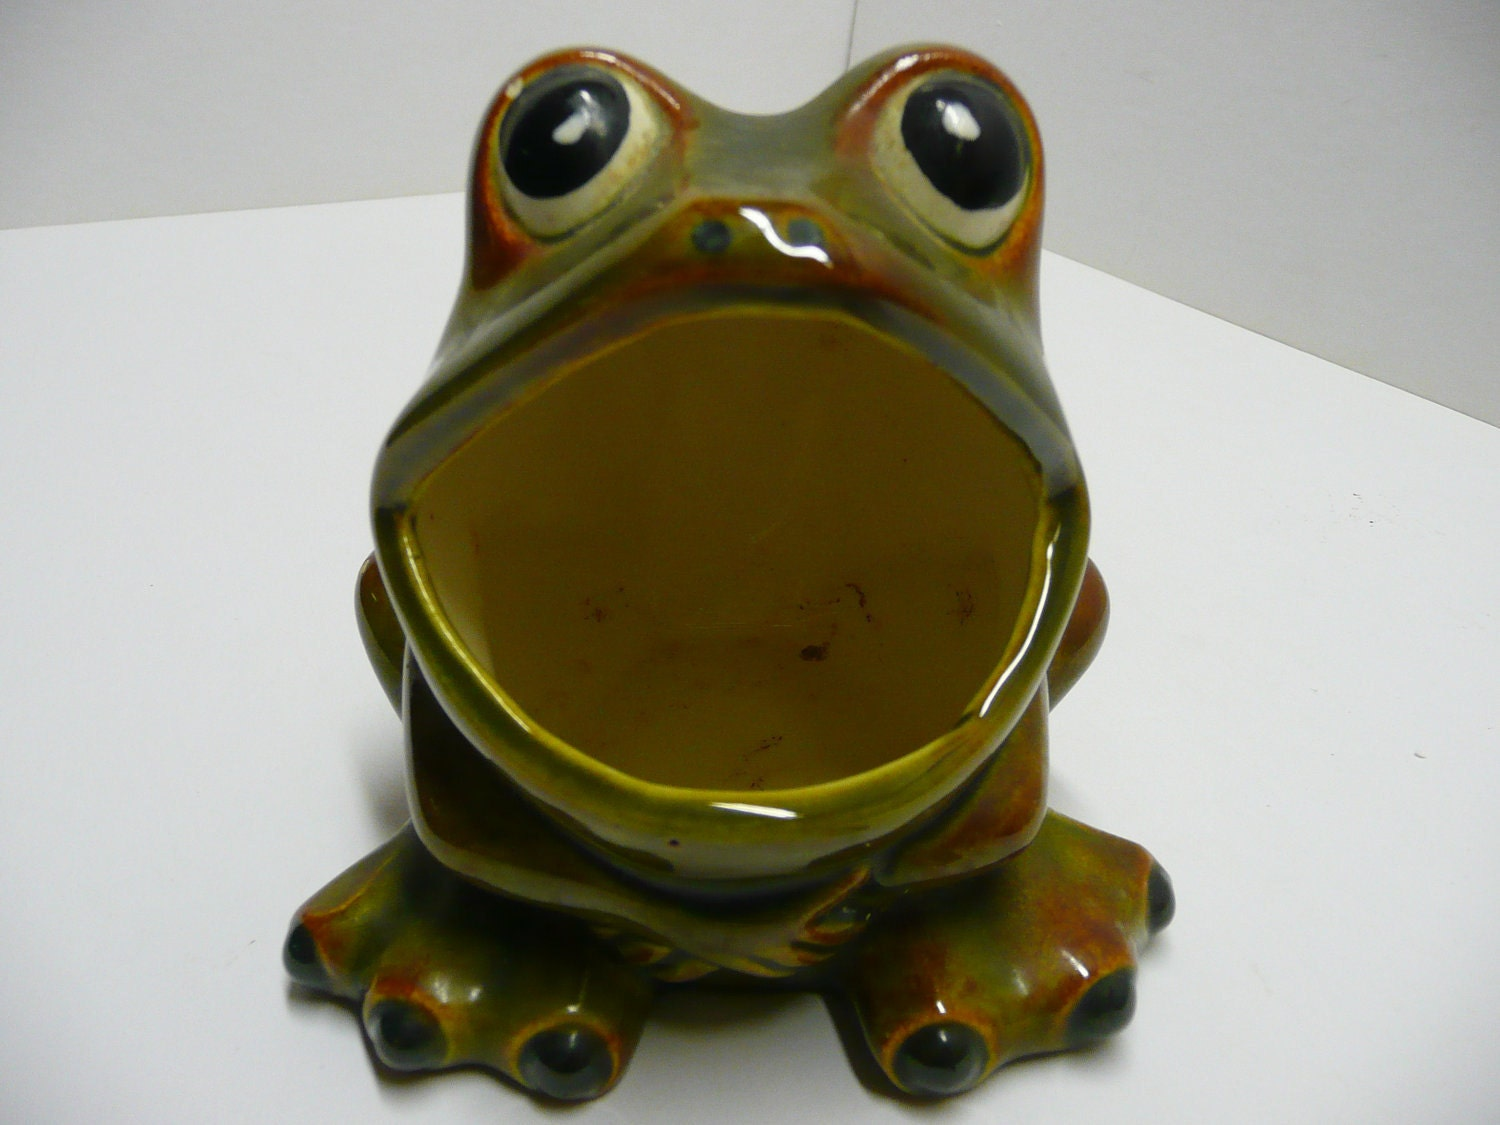 Green frog toad ceramic sink sponge holder 1973 by streetreasure - Frog sponge holder kitchen sink ...